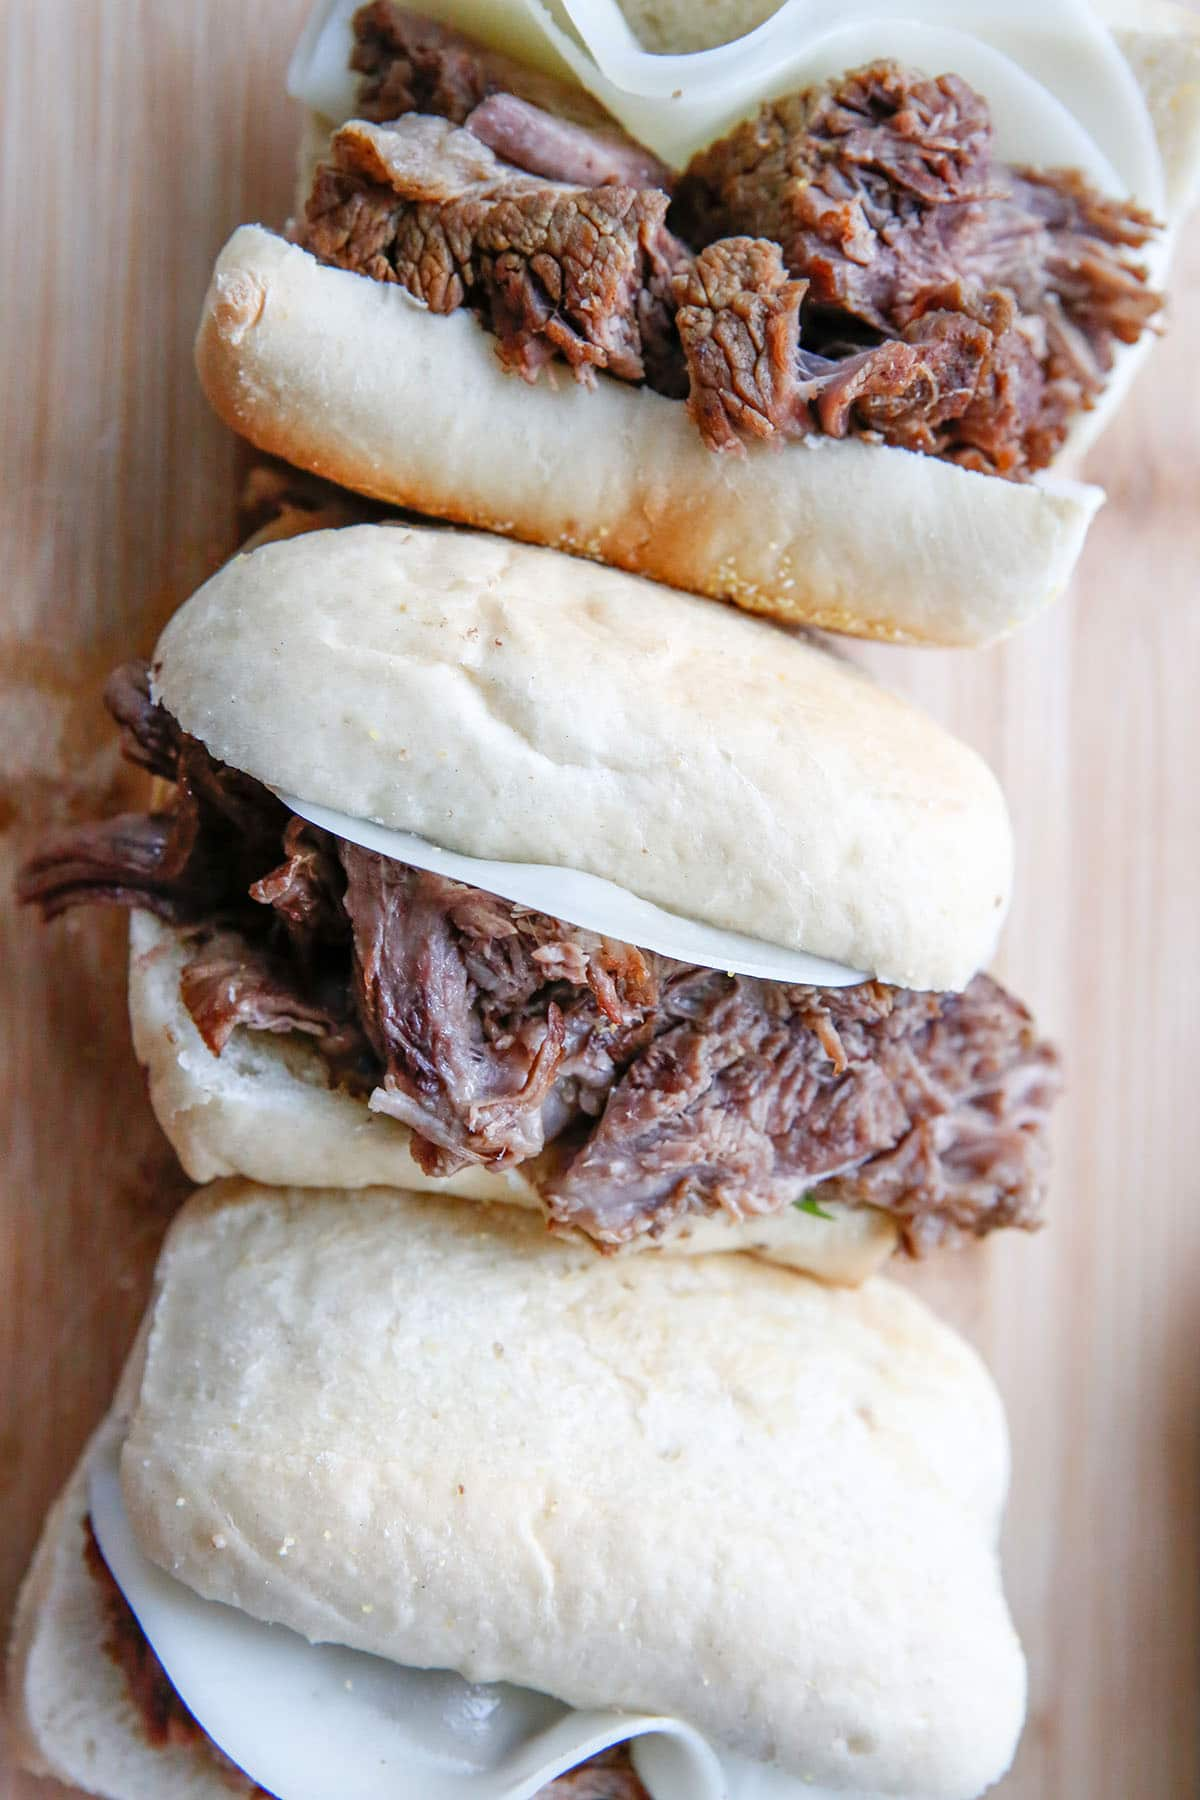 beef dip sandwiches on a wooden board